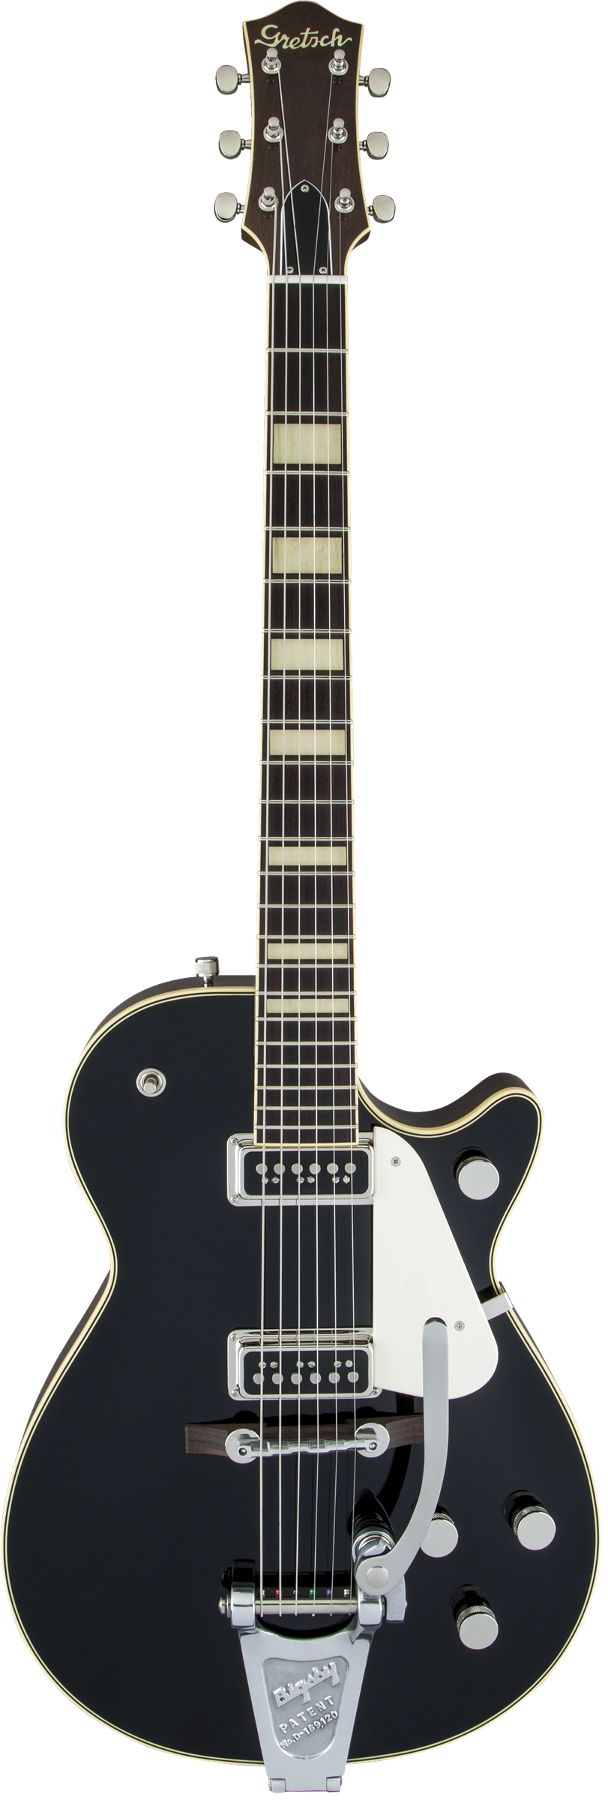 """Gretsch Guitars G6128T-53 Vintage Select '53 The Gretsch Vintage Select guitars take inspiration from the Gretsch guitars of the 1950s and early '60s. Designed with the same chambered mahogany design, the modern G6128T-53 adds a rare Gretsch """"sc"""